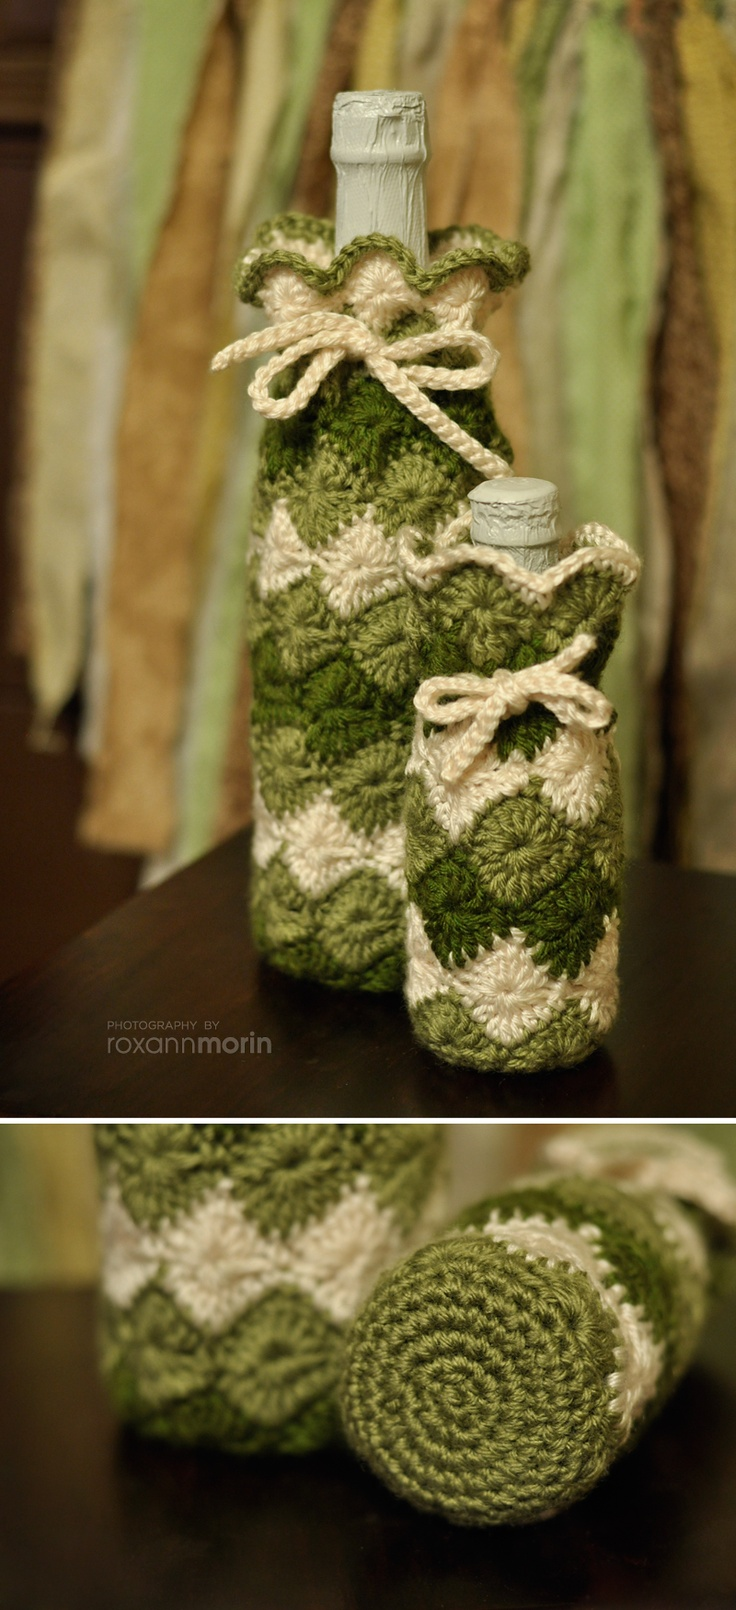 Crochet wine bottle holder / cover I used the harlequin stitch and single crochet for the bottom circle.